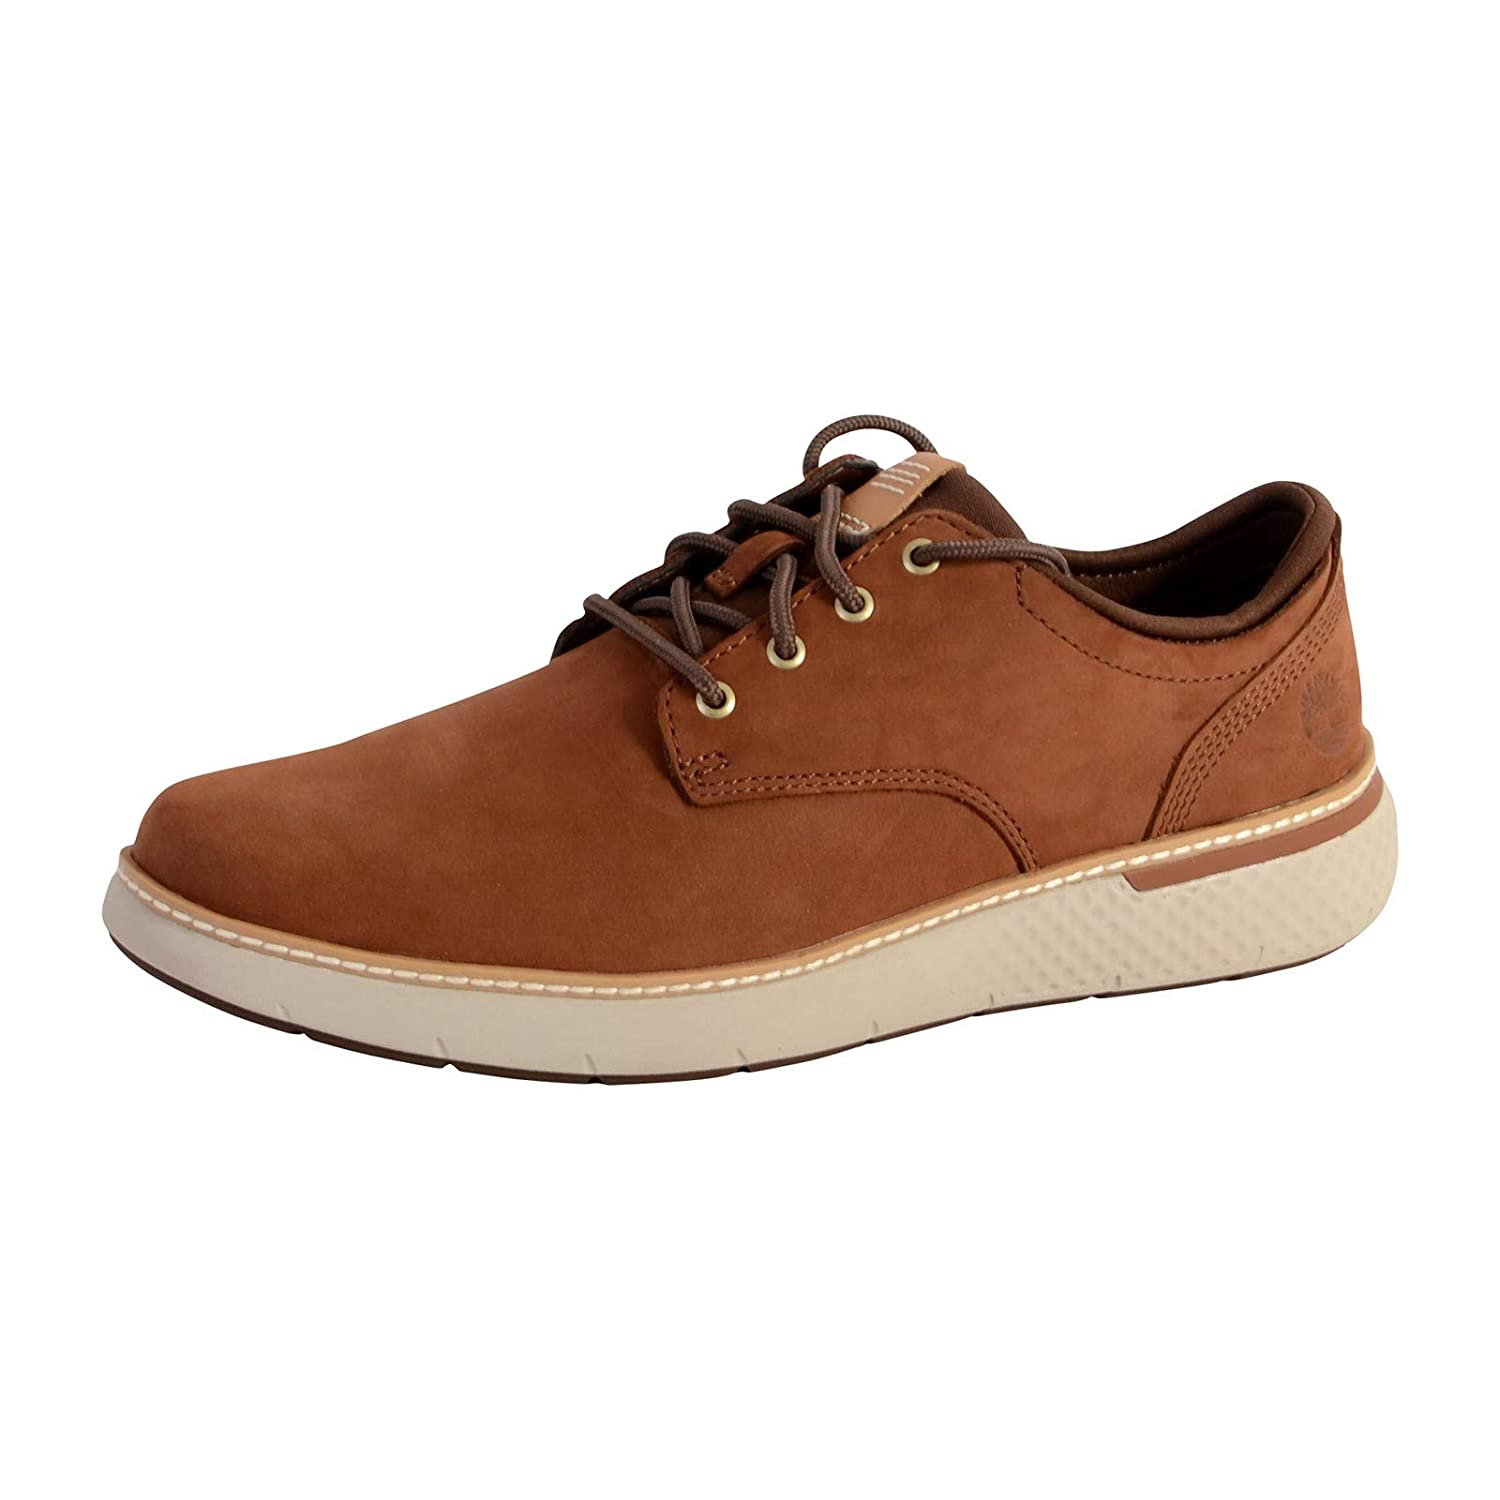 TALLA 42 EU. Zapato Timberland CA1TSH Cross Mark Oxford COGNA